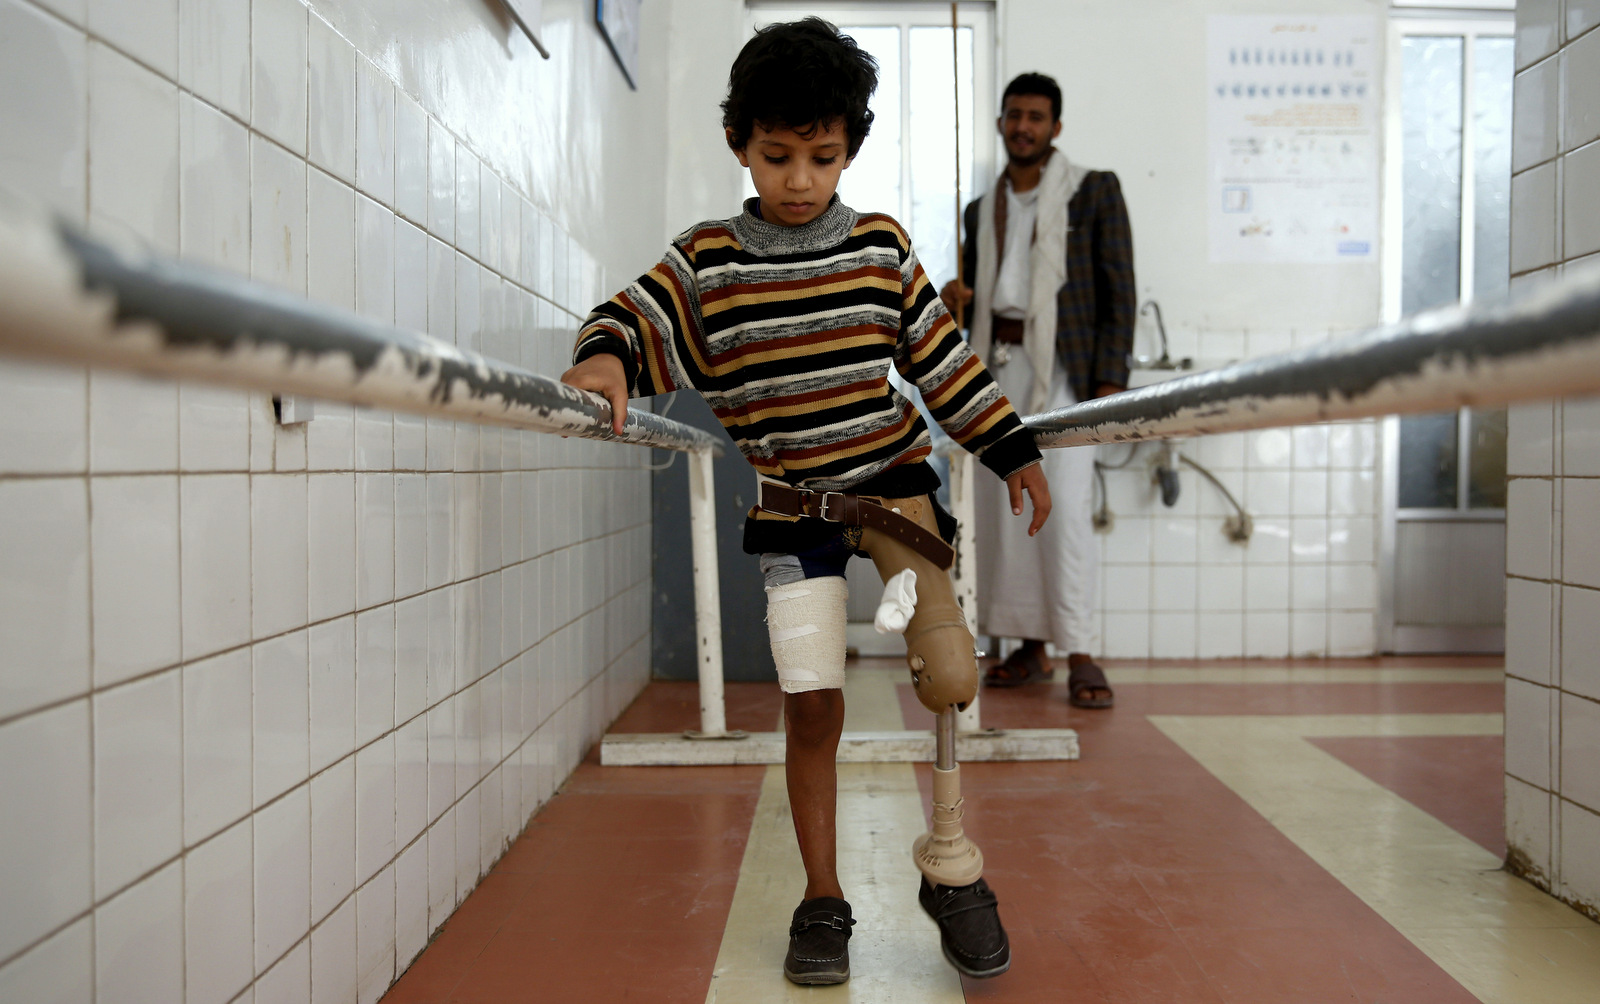 Why Aren't Negotiations Being Considered to Resolve the Humanitarian Crisis in Yemen?